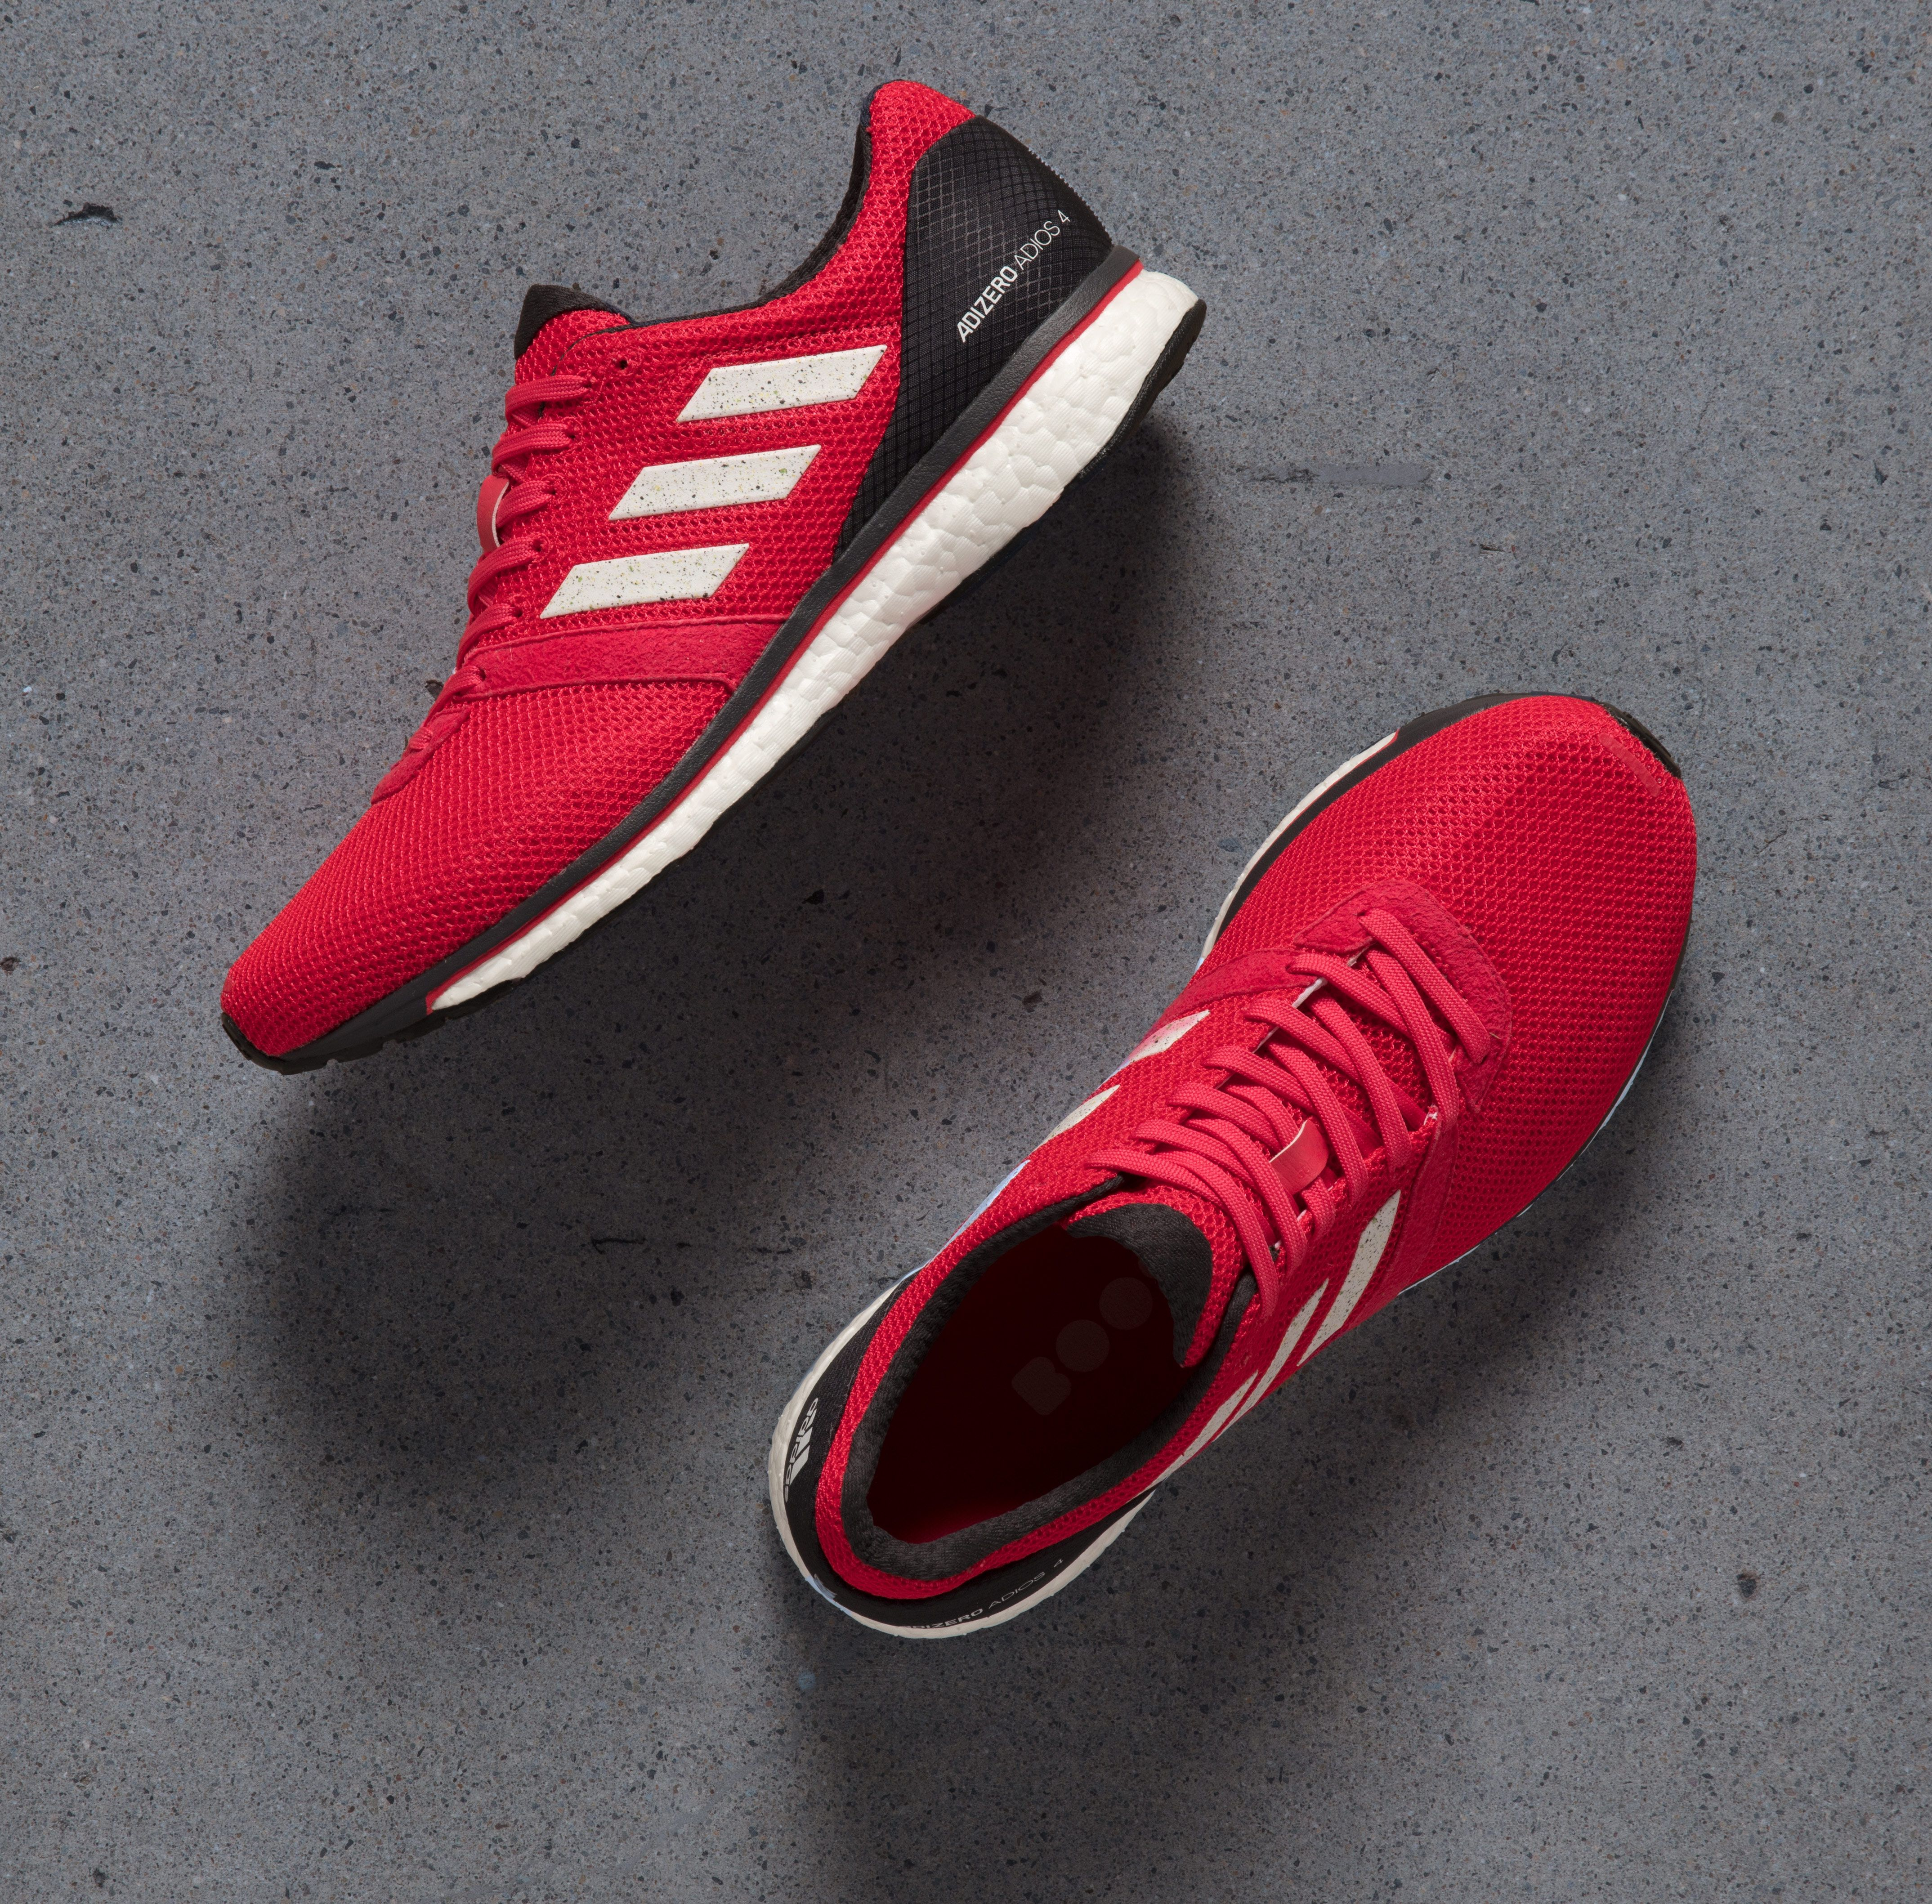 bomba reducir comienzo  The men's adidas adizero adios 4: Beloved of marathoners worldwide thanks  to its superior performance. | Adidas running shoes, Adidas, Adidas men